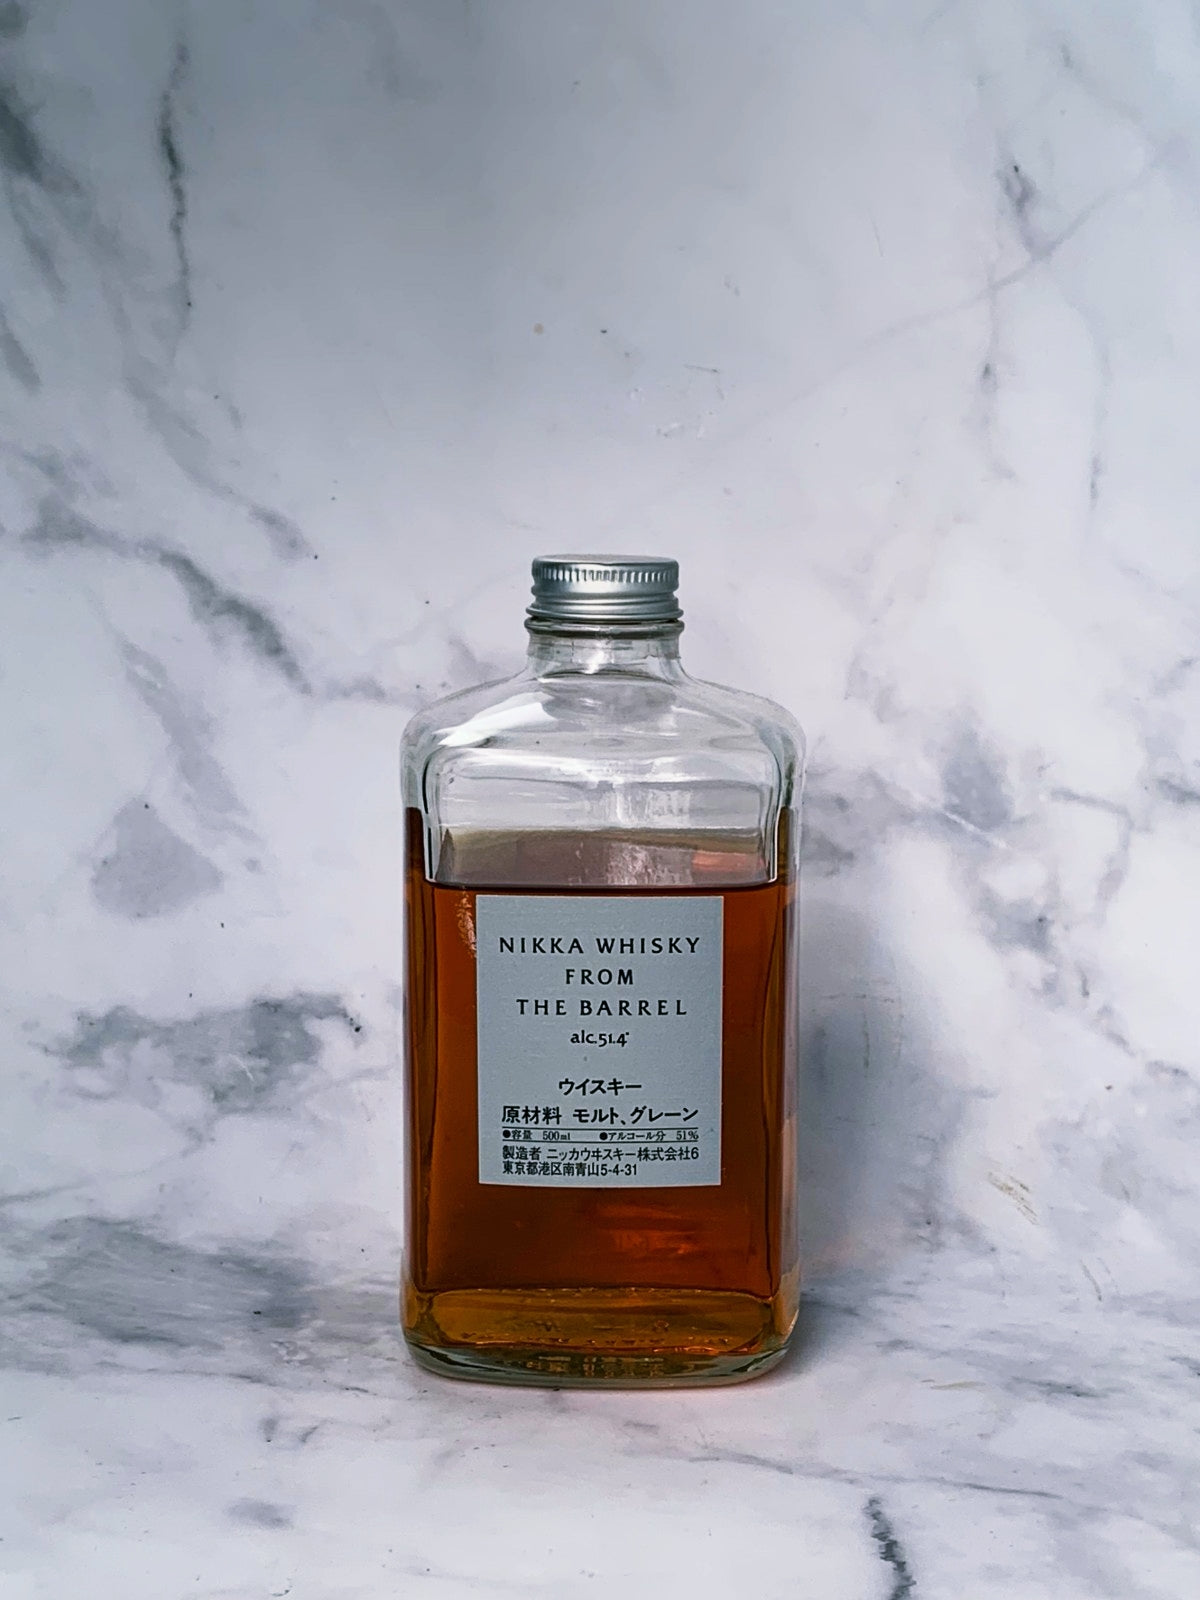 Nikka Whisky From The Barrel (50ml serve)